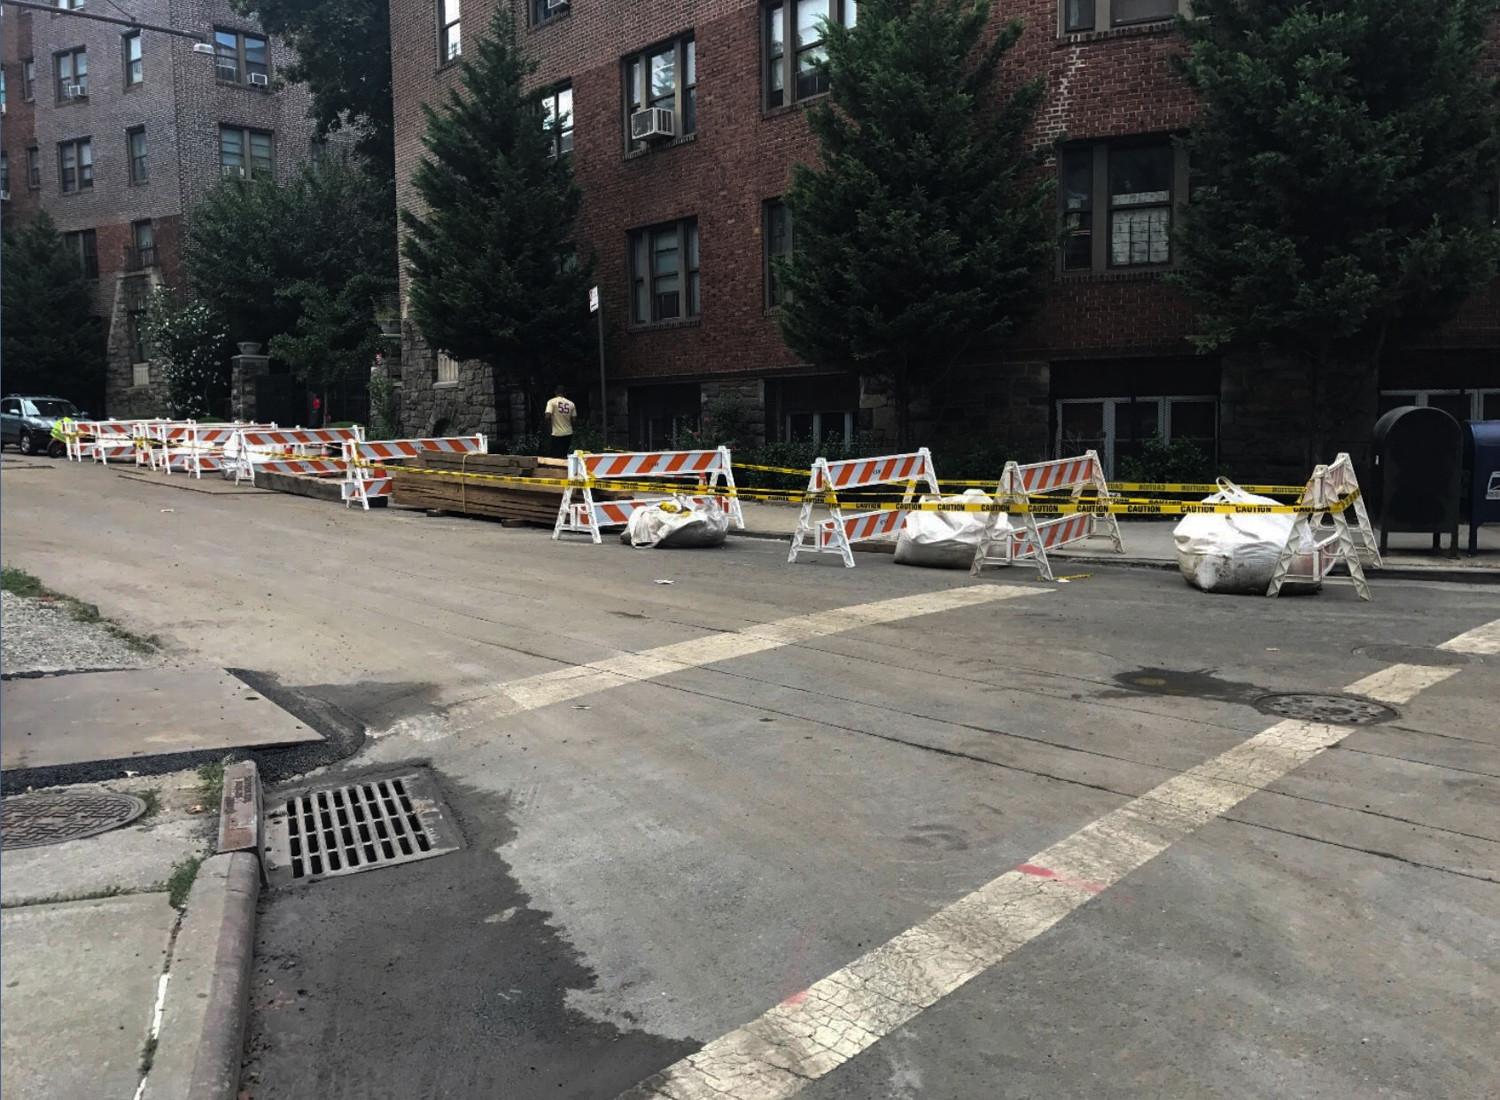 Even though Con Edison officials say their repair work is necessary, the work has disrupted life throughout the area with unannounced street closures and removal of parking spaces for extended periods of time. Residents have asked ConEd to coordinate more with community leaders, so that they can have advanced notice of the work.